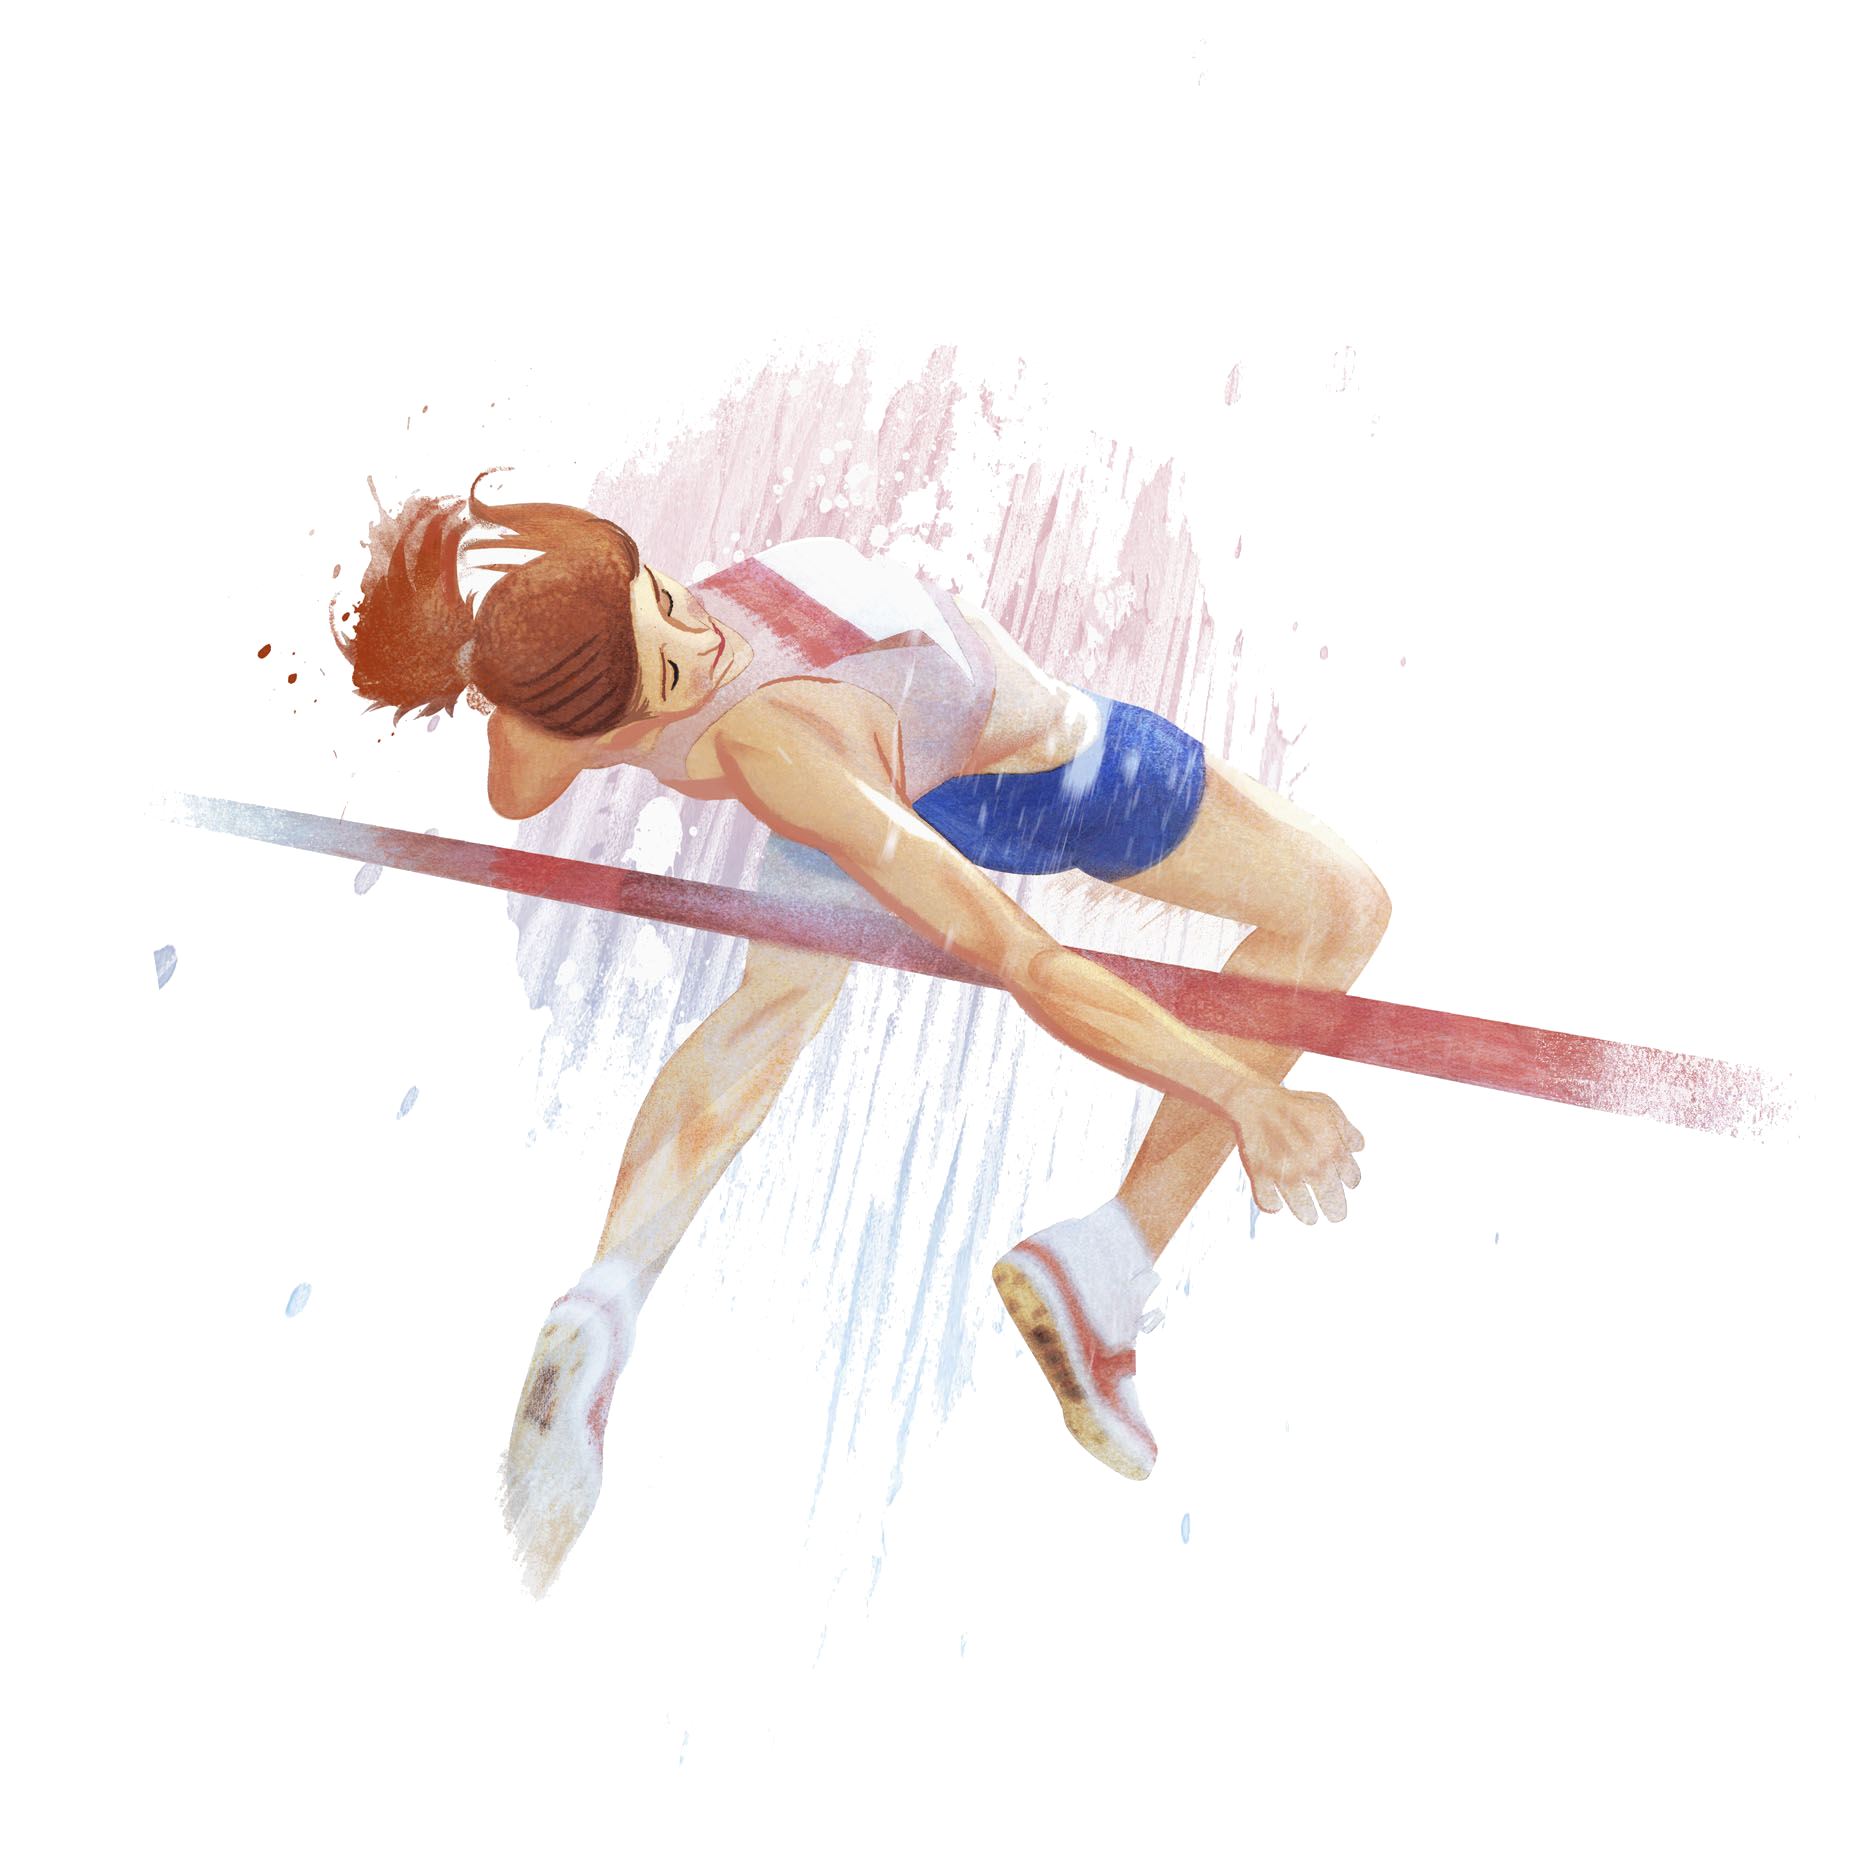 Jumping drawing. High jump athlete a